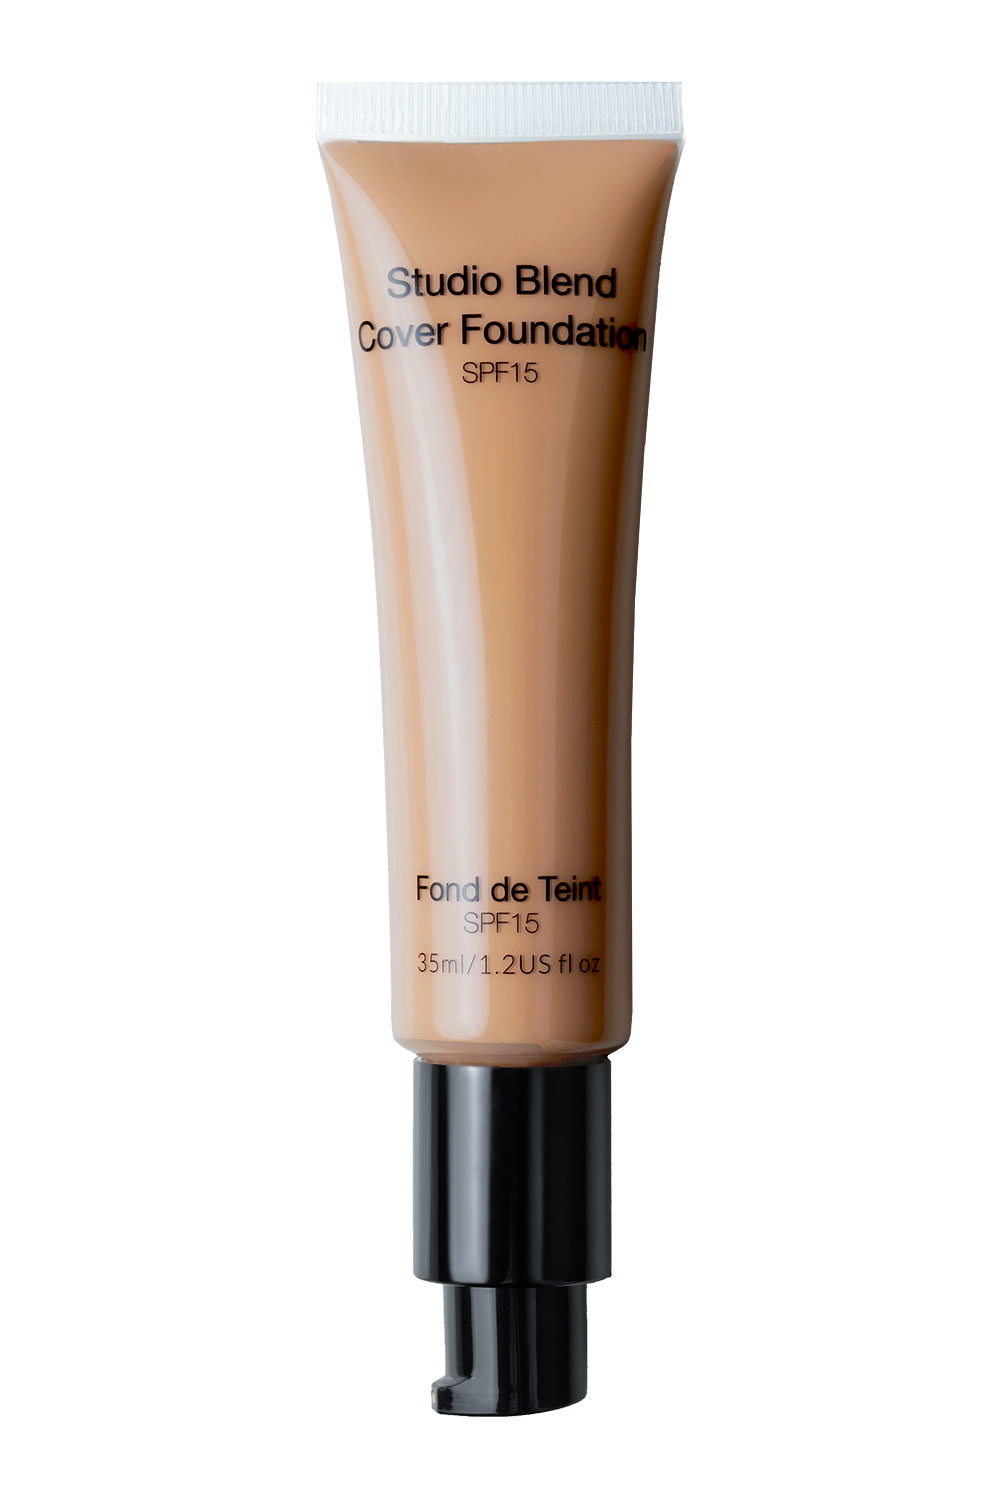 120 - Studio Blend Cover Foundation